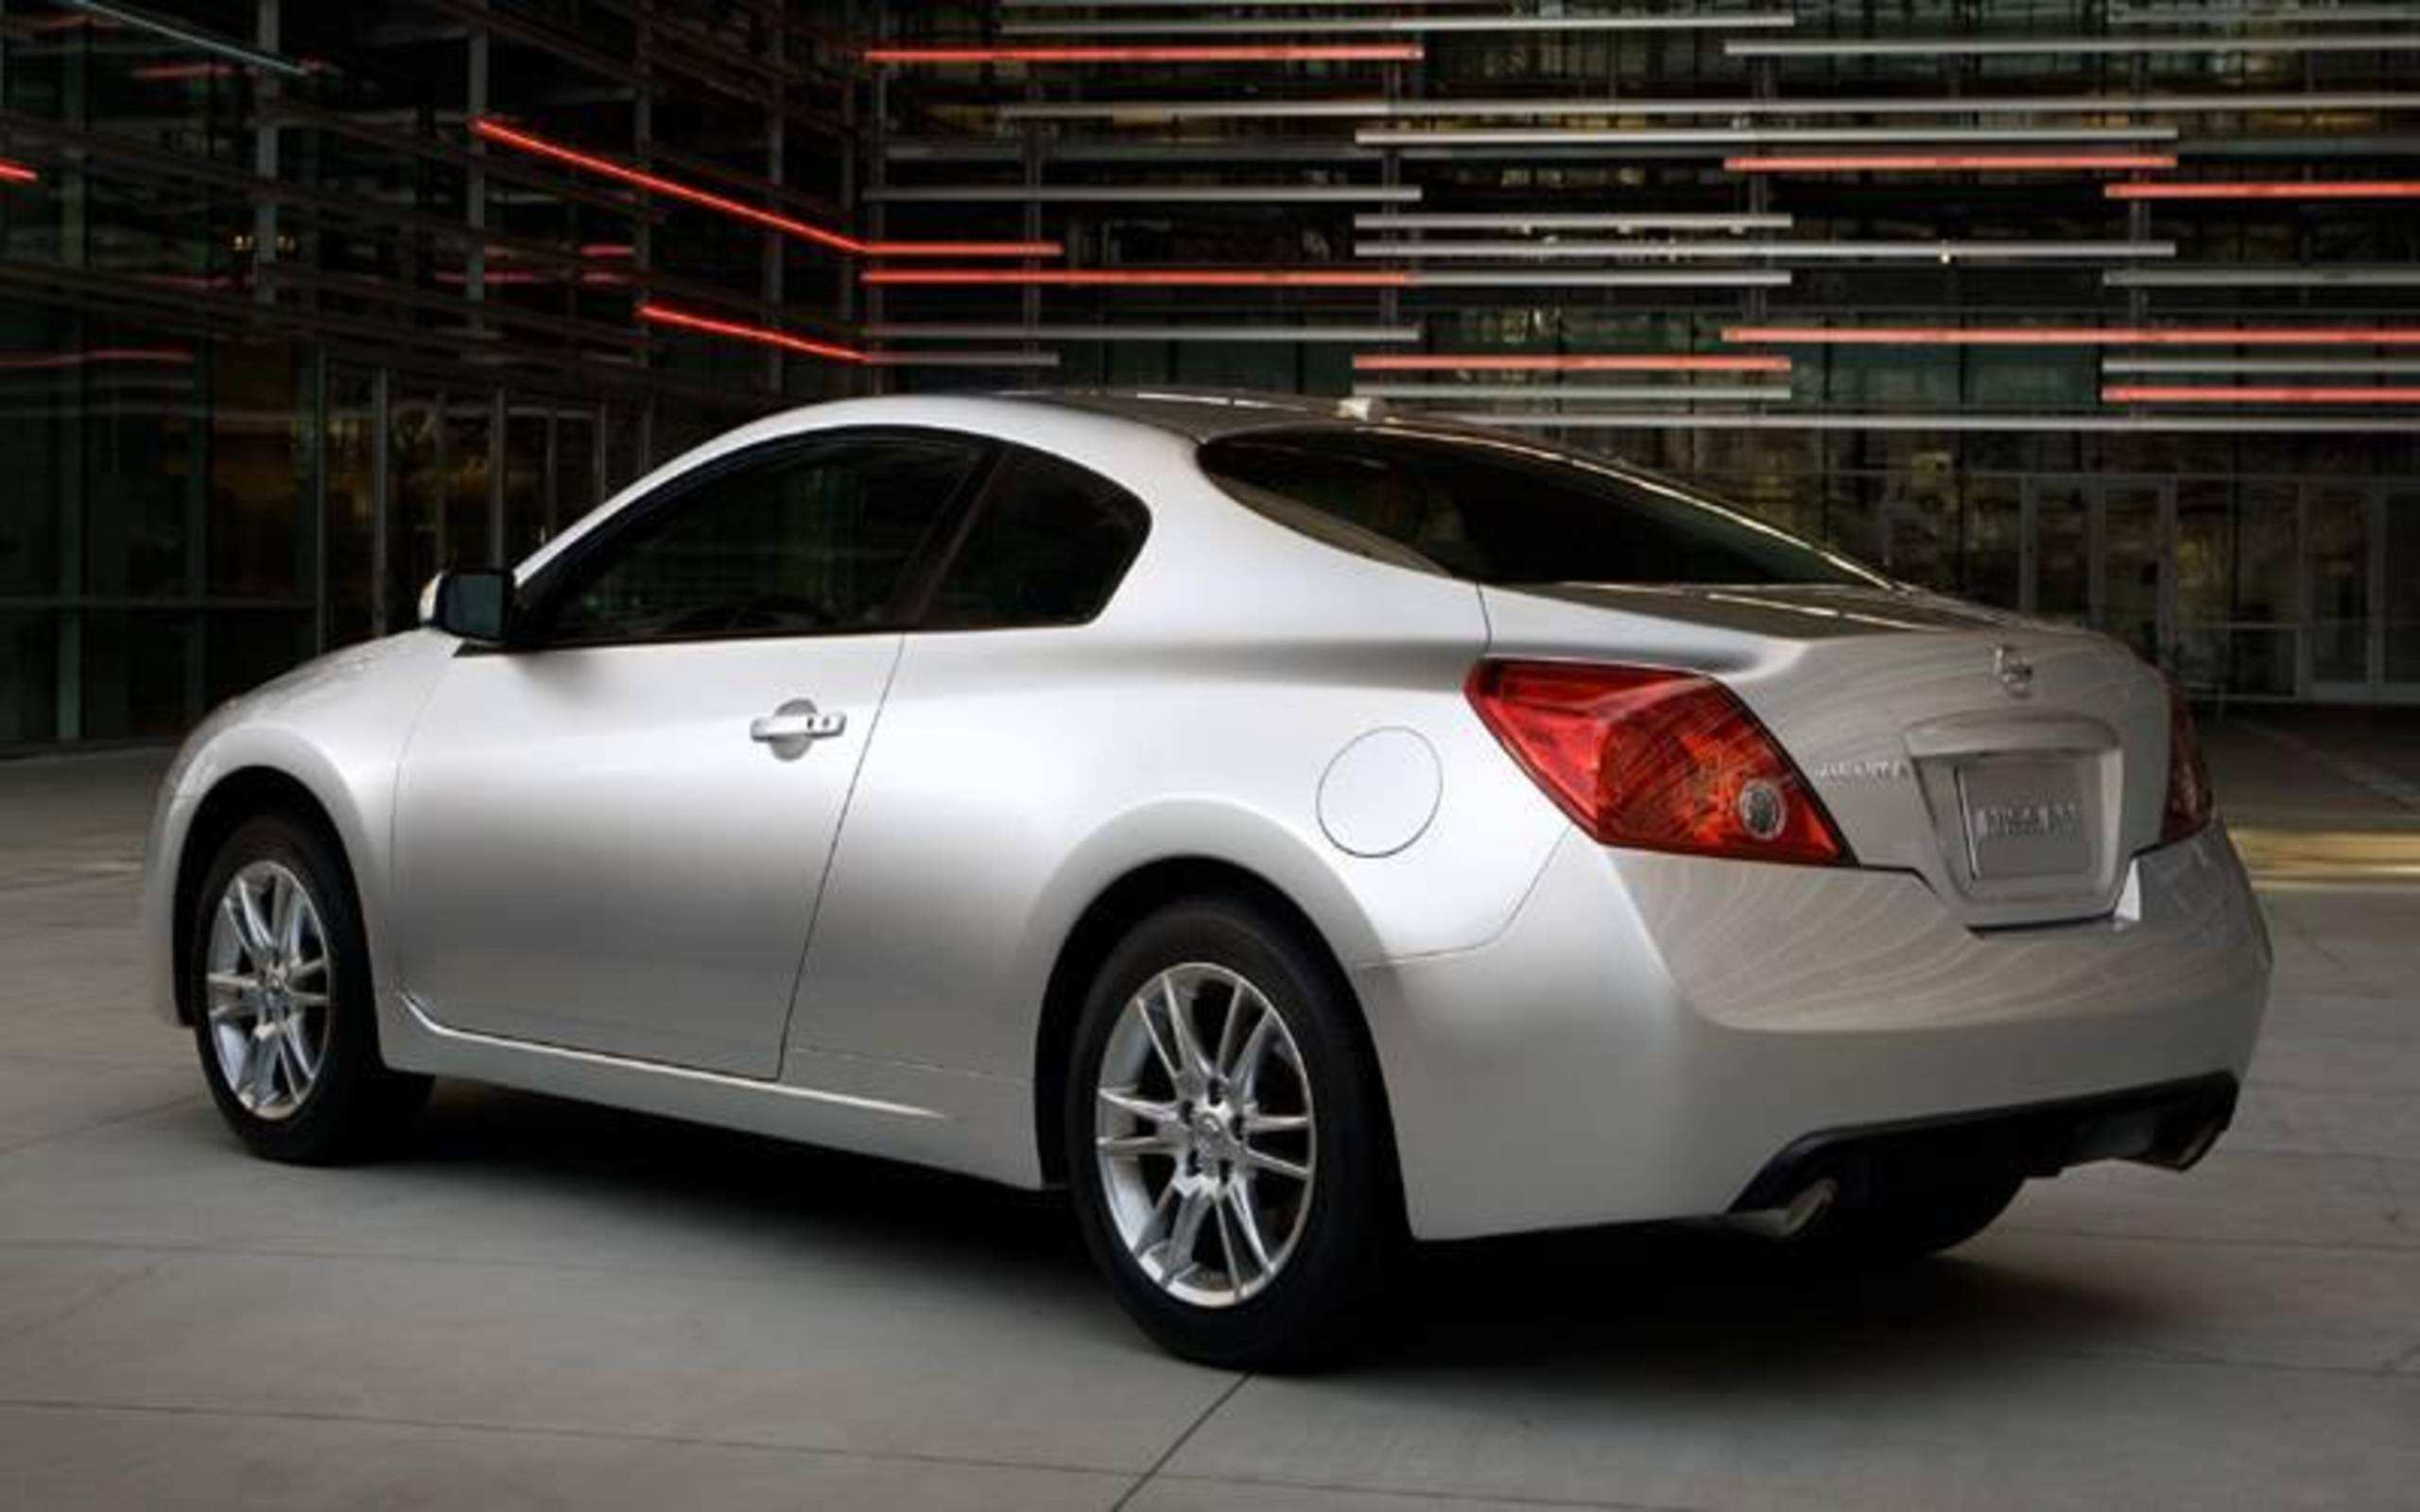 52 The Nissan Altima Coupe 2008 Prices by Nissan Altima Coupe 2008